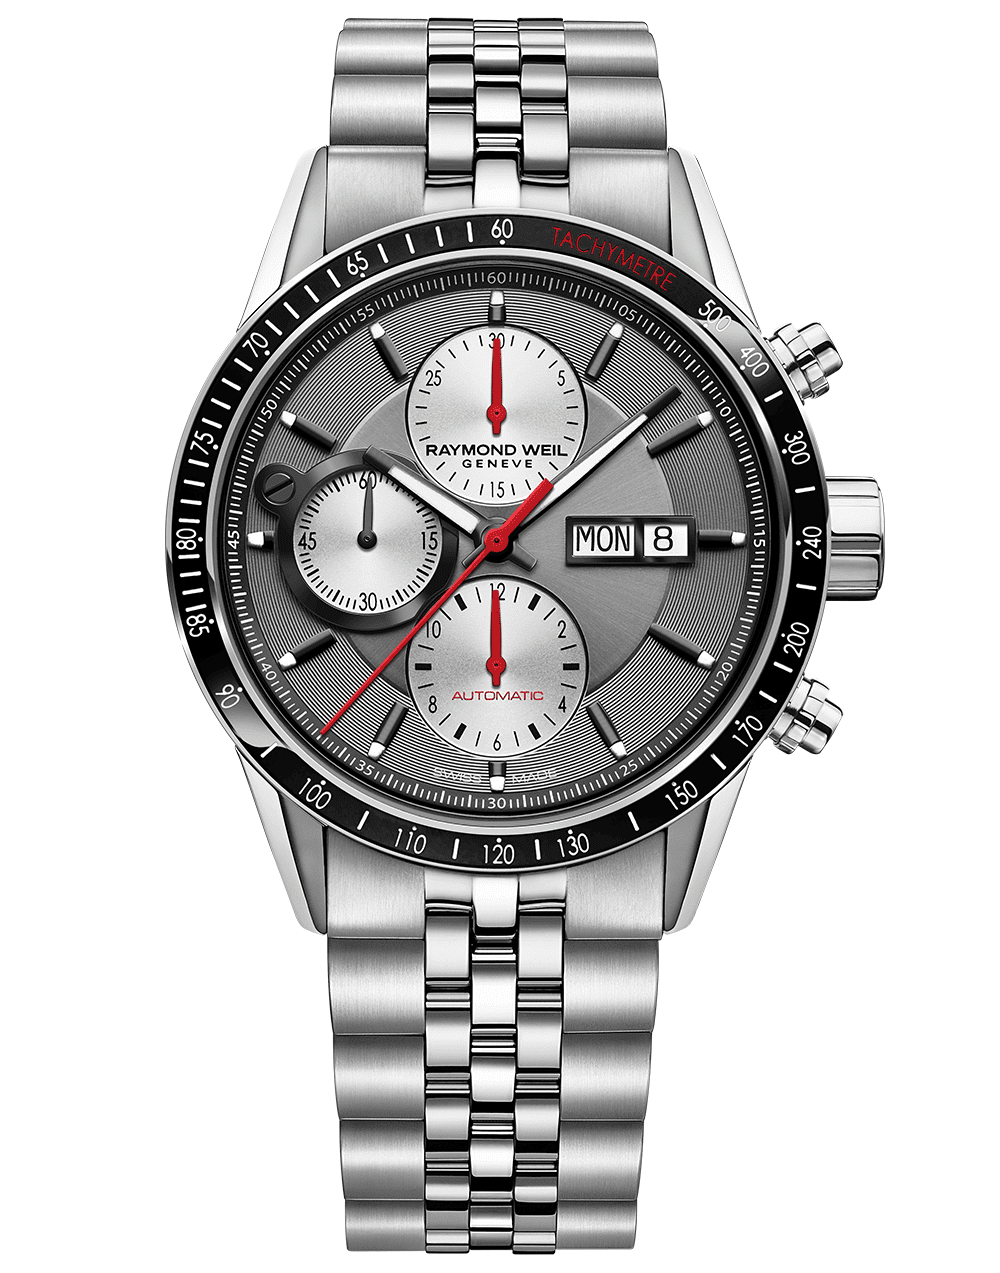 RAYMOND WEIL Freelancer Chronograph Stainless Steel Bracelet Luxury Swiss Watch